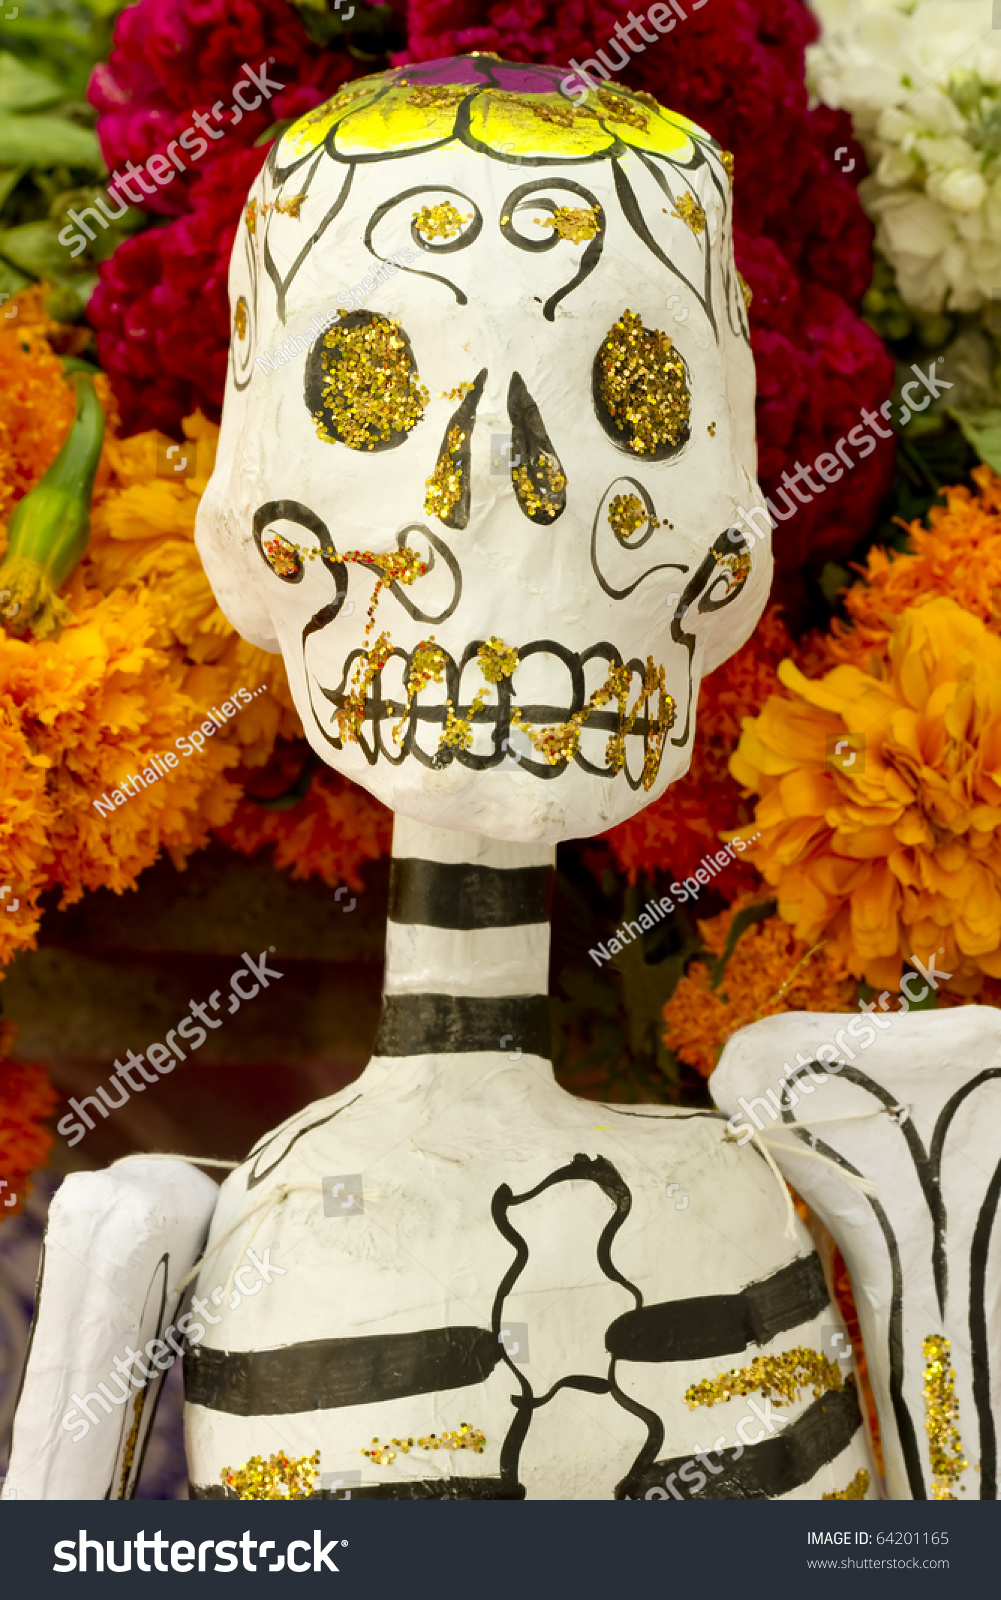 dia de los muertos essay in spanish Dia de los muertos during this time of year, families across the globe gather together to remember and celebrate their lost loved ones dia de los muertos or.